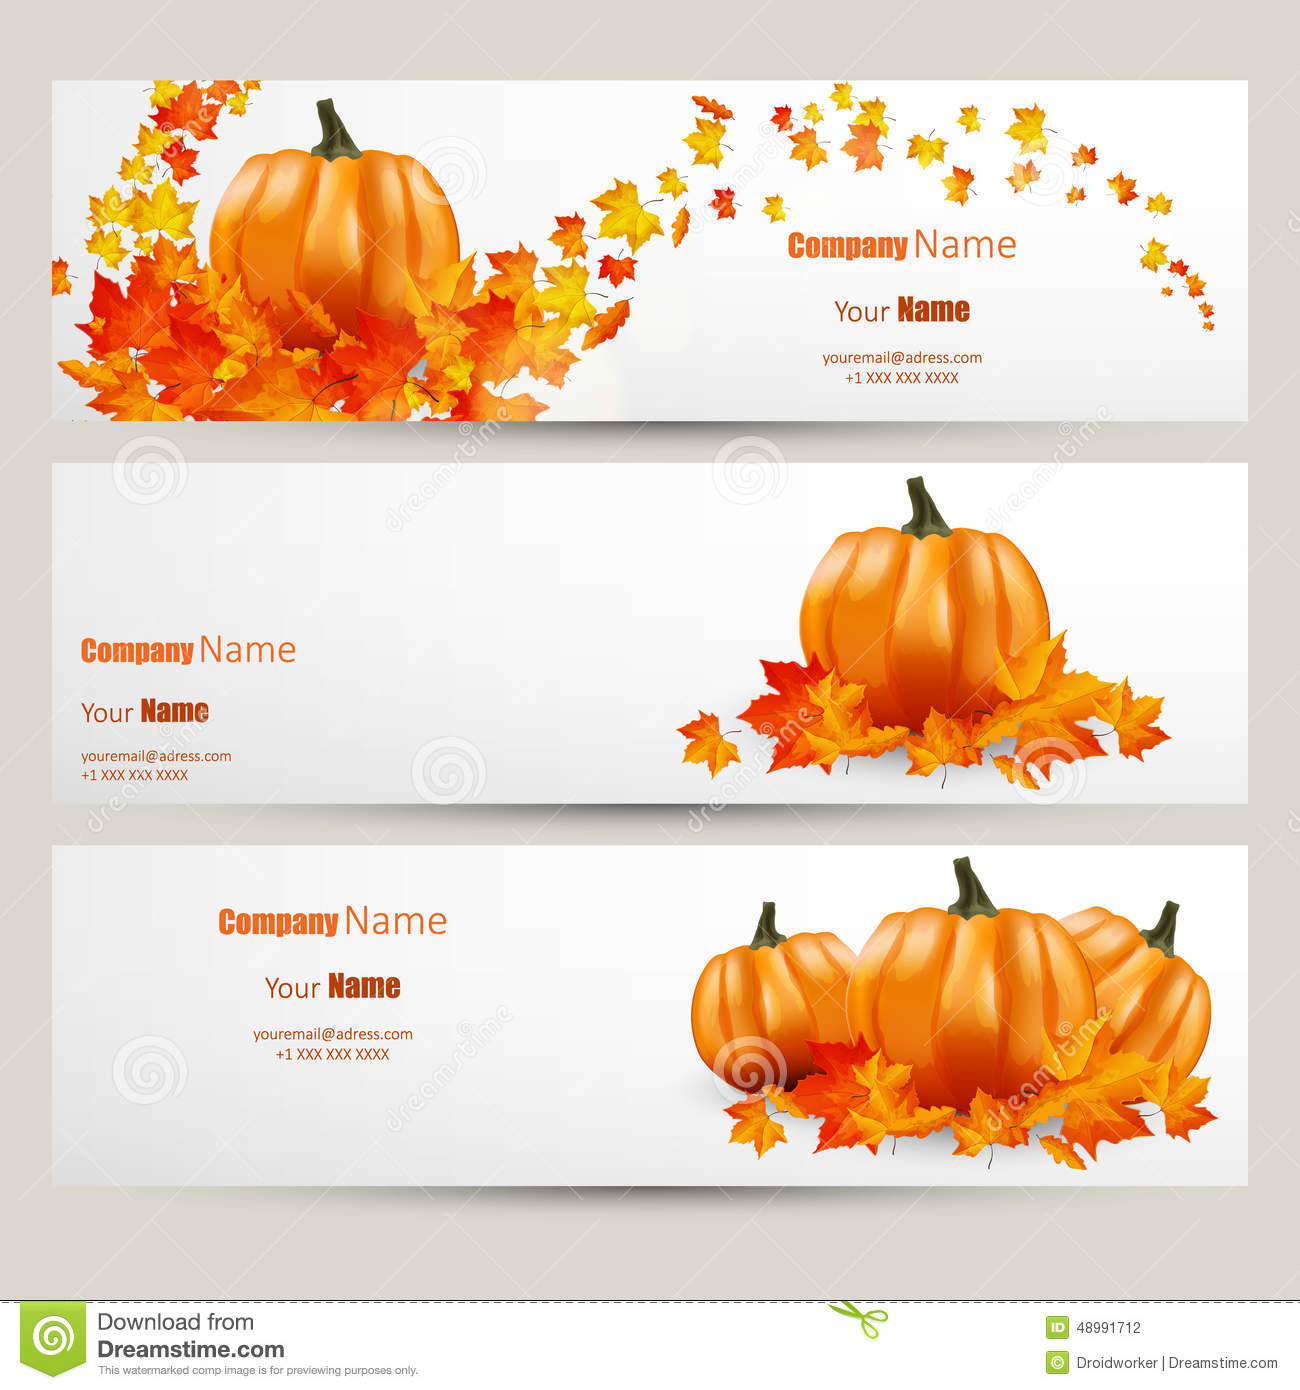 Modern vector set of colorful autumn leaves and pumpkins bannflat style website design with - Autumn plowing time all set for winter ...